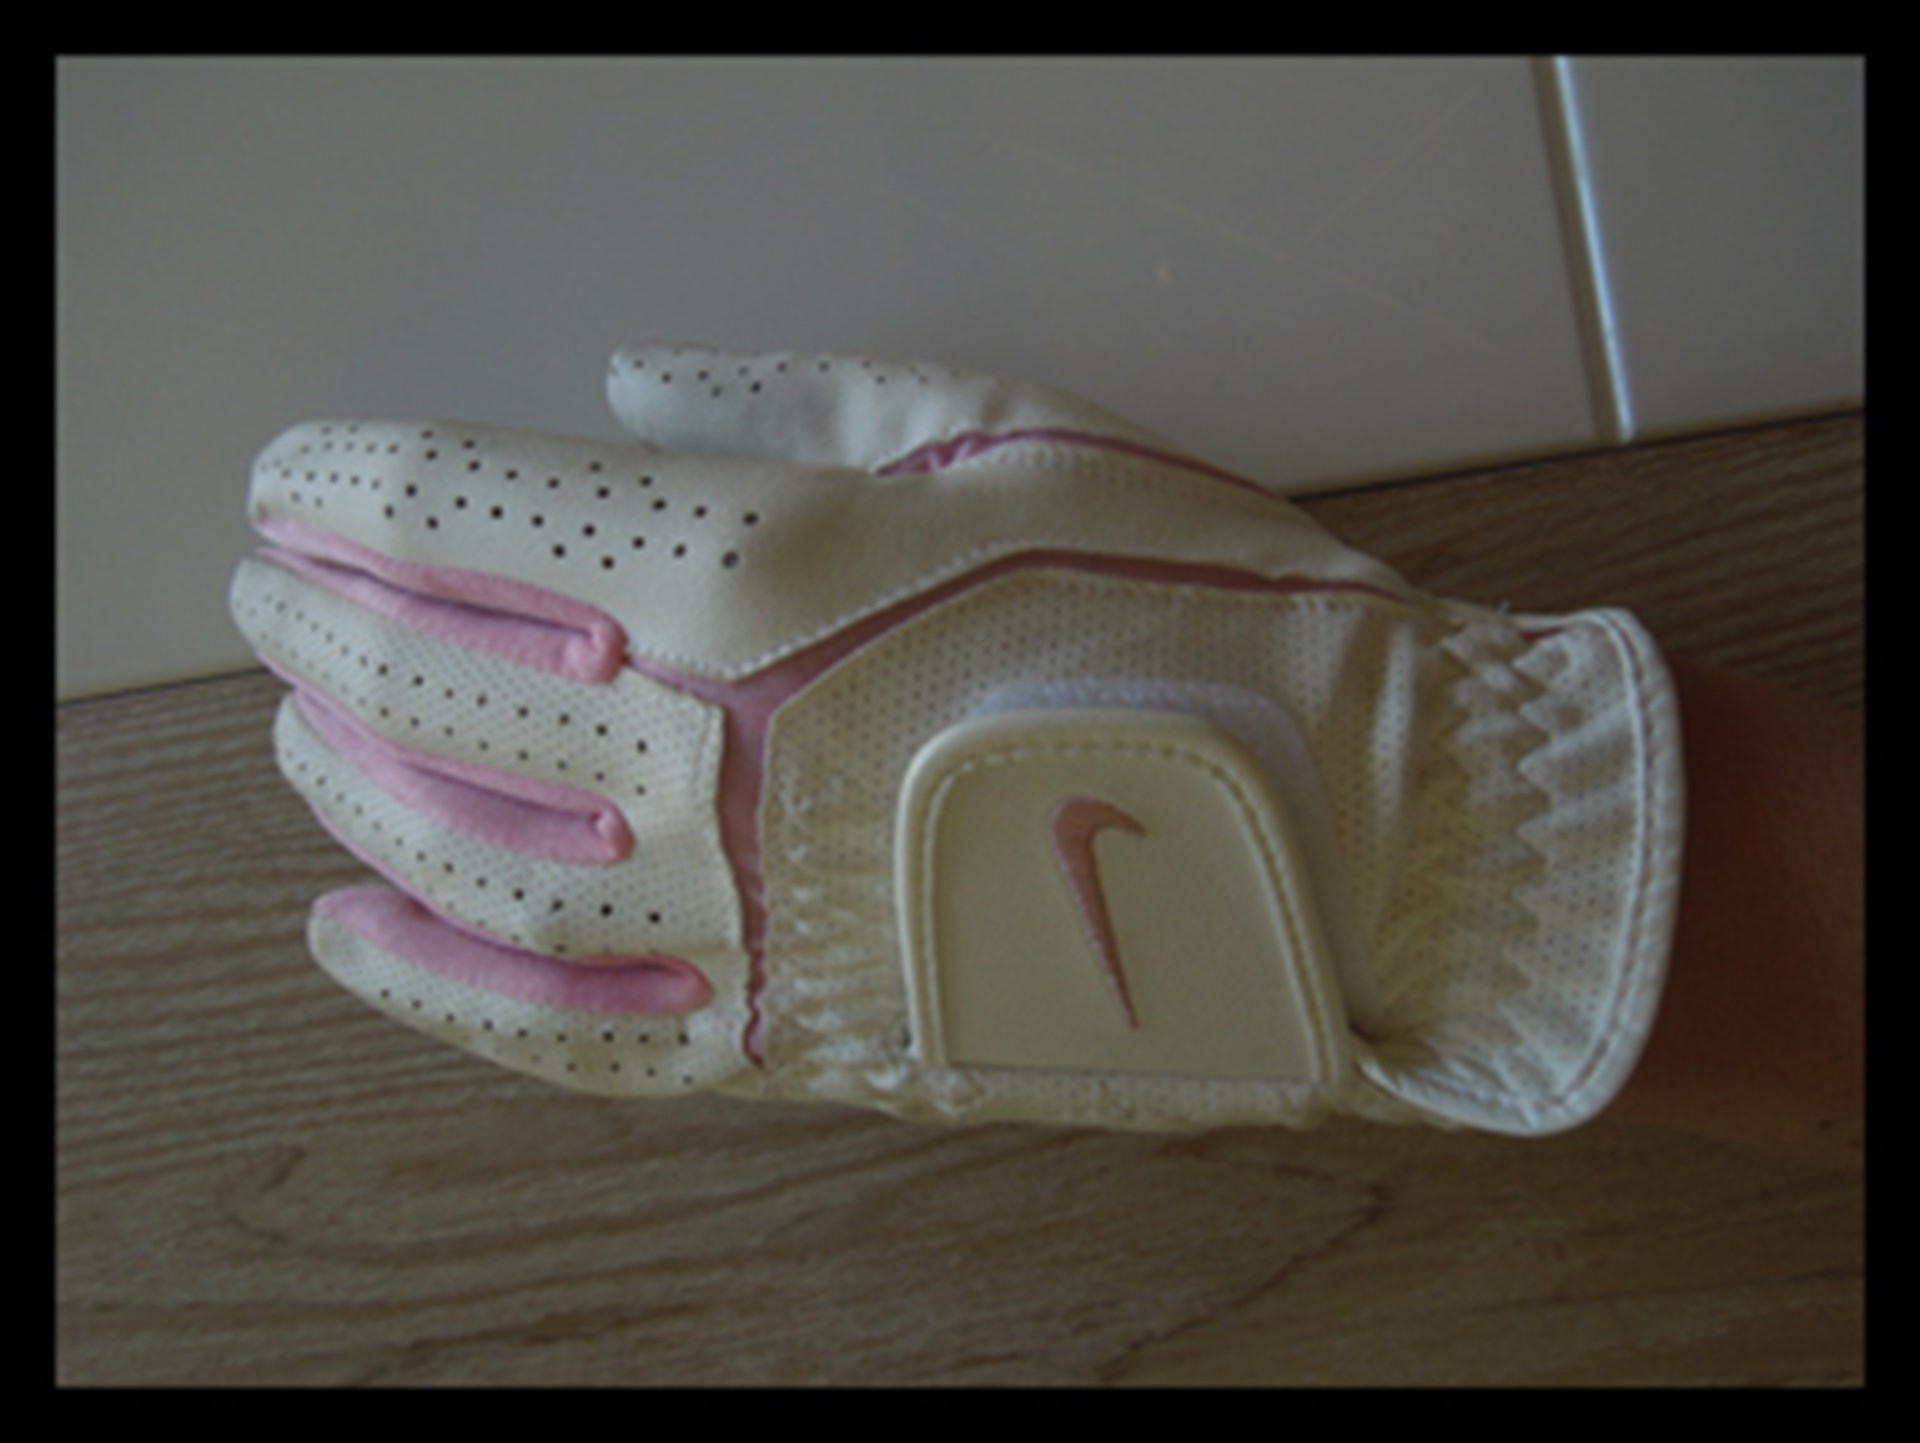 LittleMMI Pamela Buckle Randpark Golf Course Whitcher Pro Shop Nike Pink and White Glove